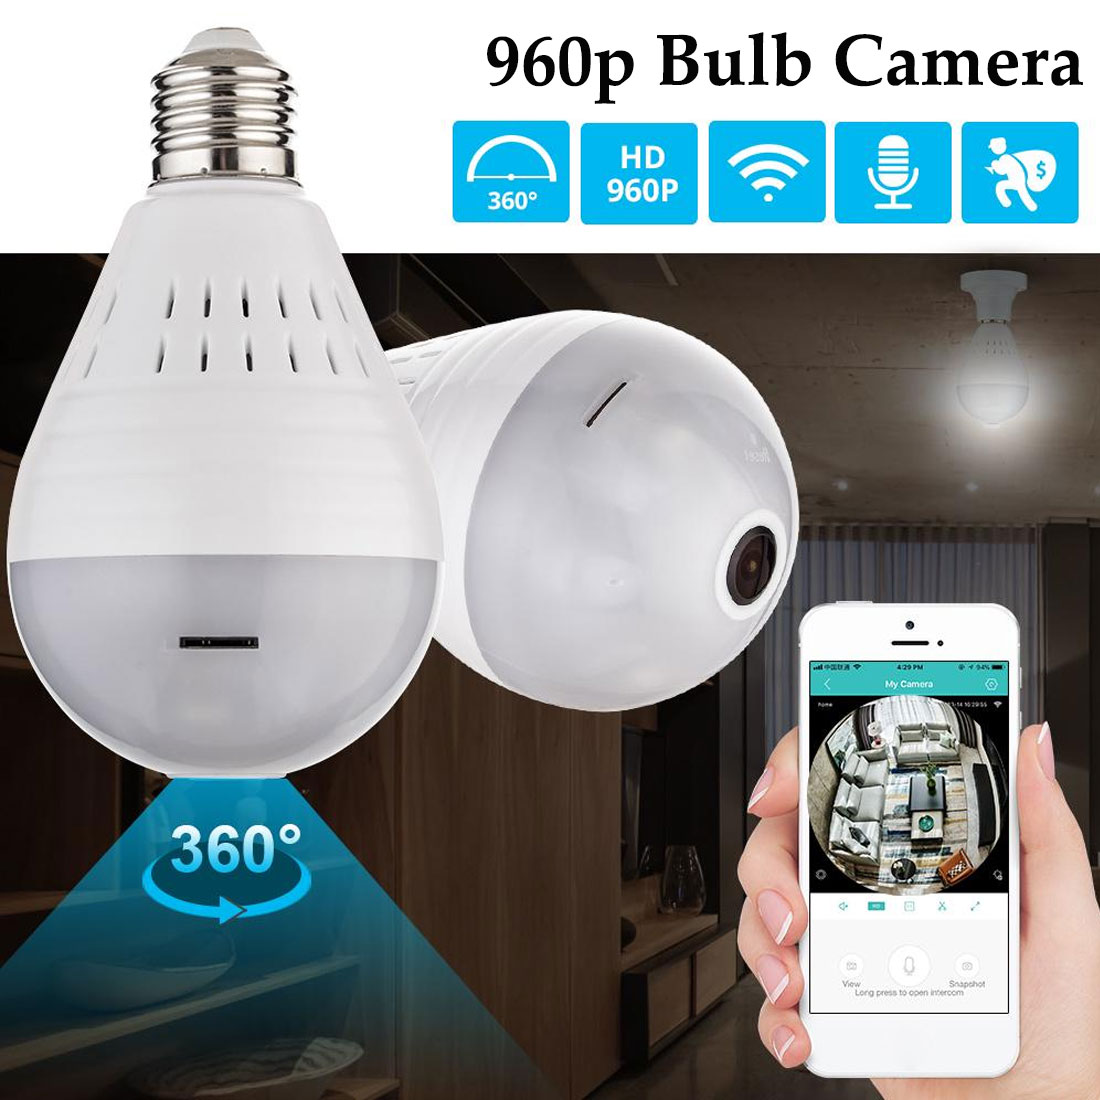 360 Degree LED Light 960P Wireless Panoramic Home Security Security WiFi CCTV Fisheye Bulb Lamp IP Camera Two Ways Audio